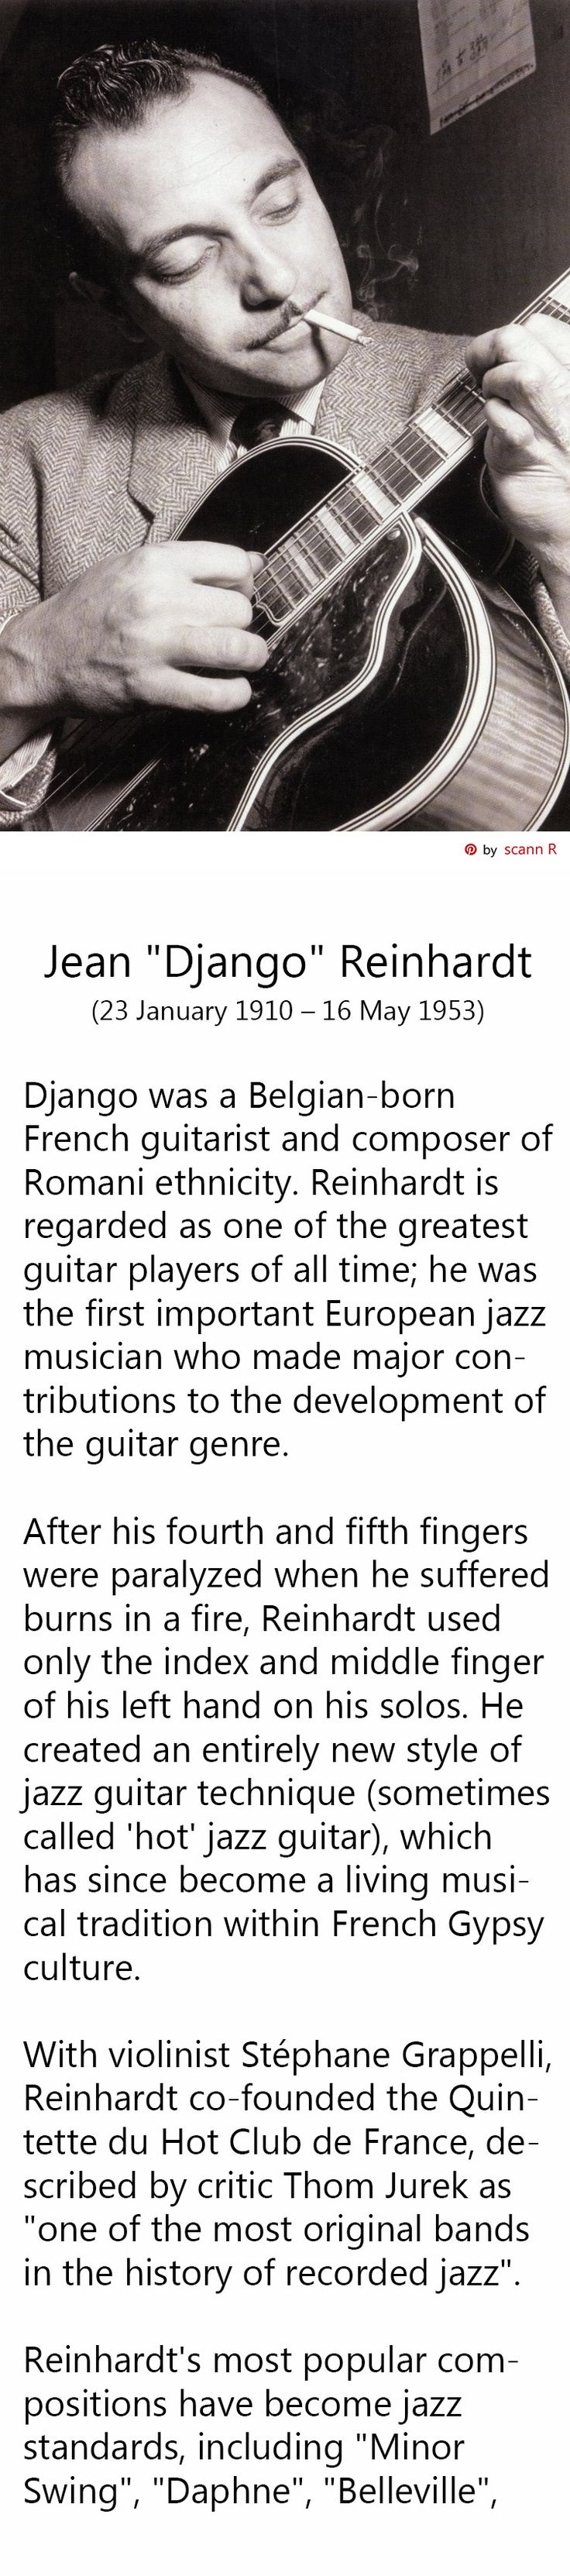 "Jean ""Django"" Reinhardt (23 January 1910 – 16 May 1953) was a Belgian-born French guitarist and composer of Romani ethnicity. Reinhardt is regarded as one of the greatest guitar players of all time; he was the first important European jazz musician who made major contributions to the development of the guitar genre. - Pin made by scann R"